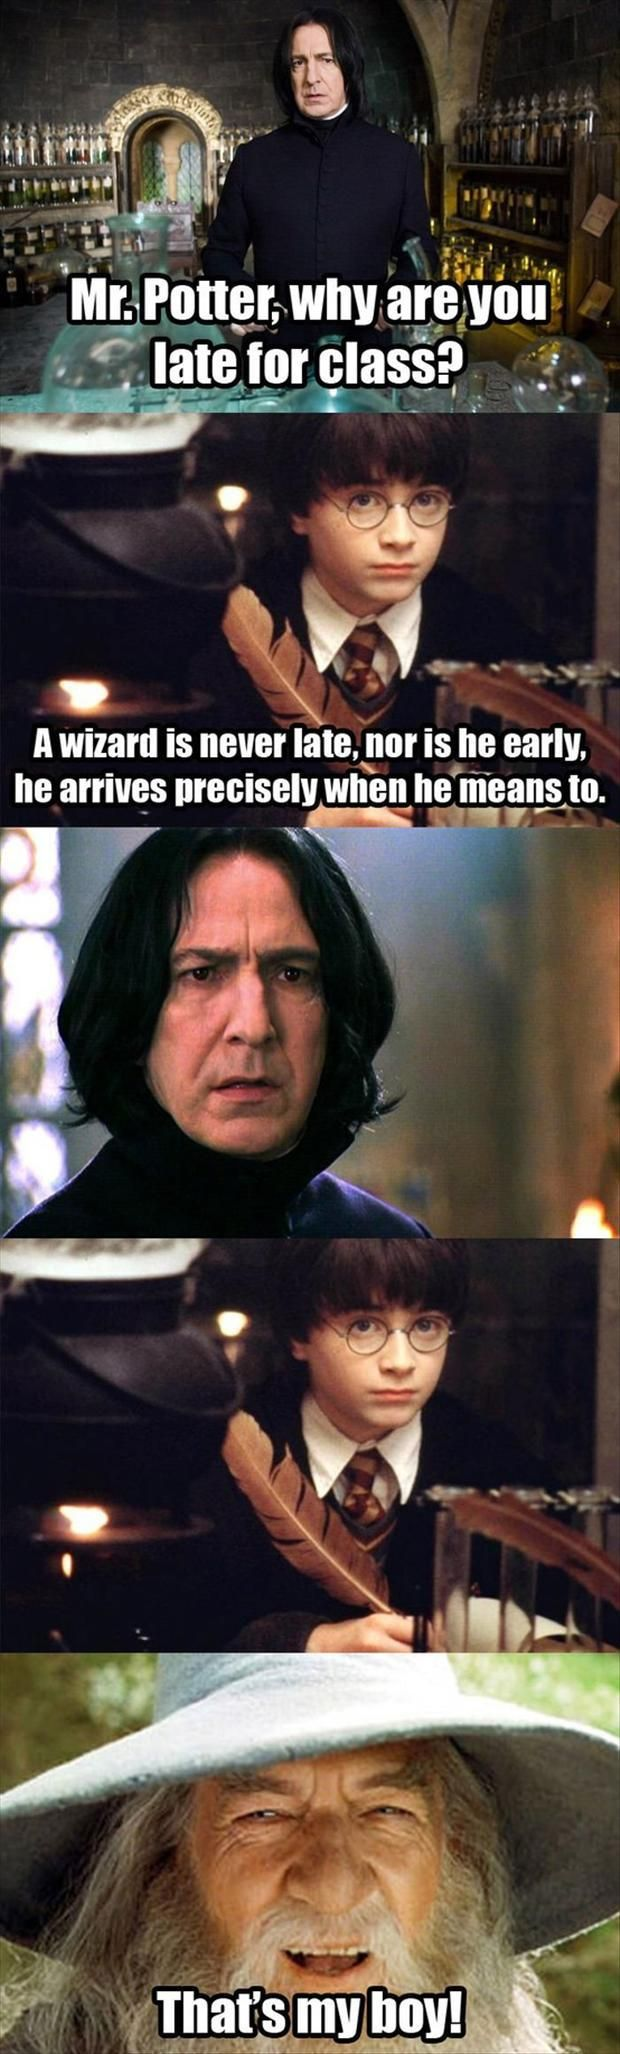 a wizard is never late, nor is he early, funny harry potter